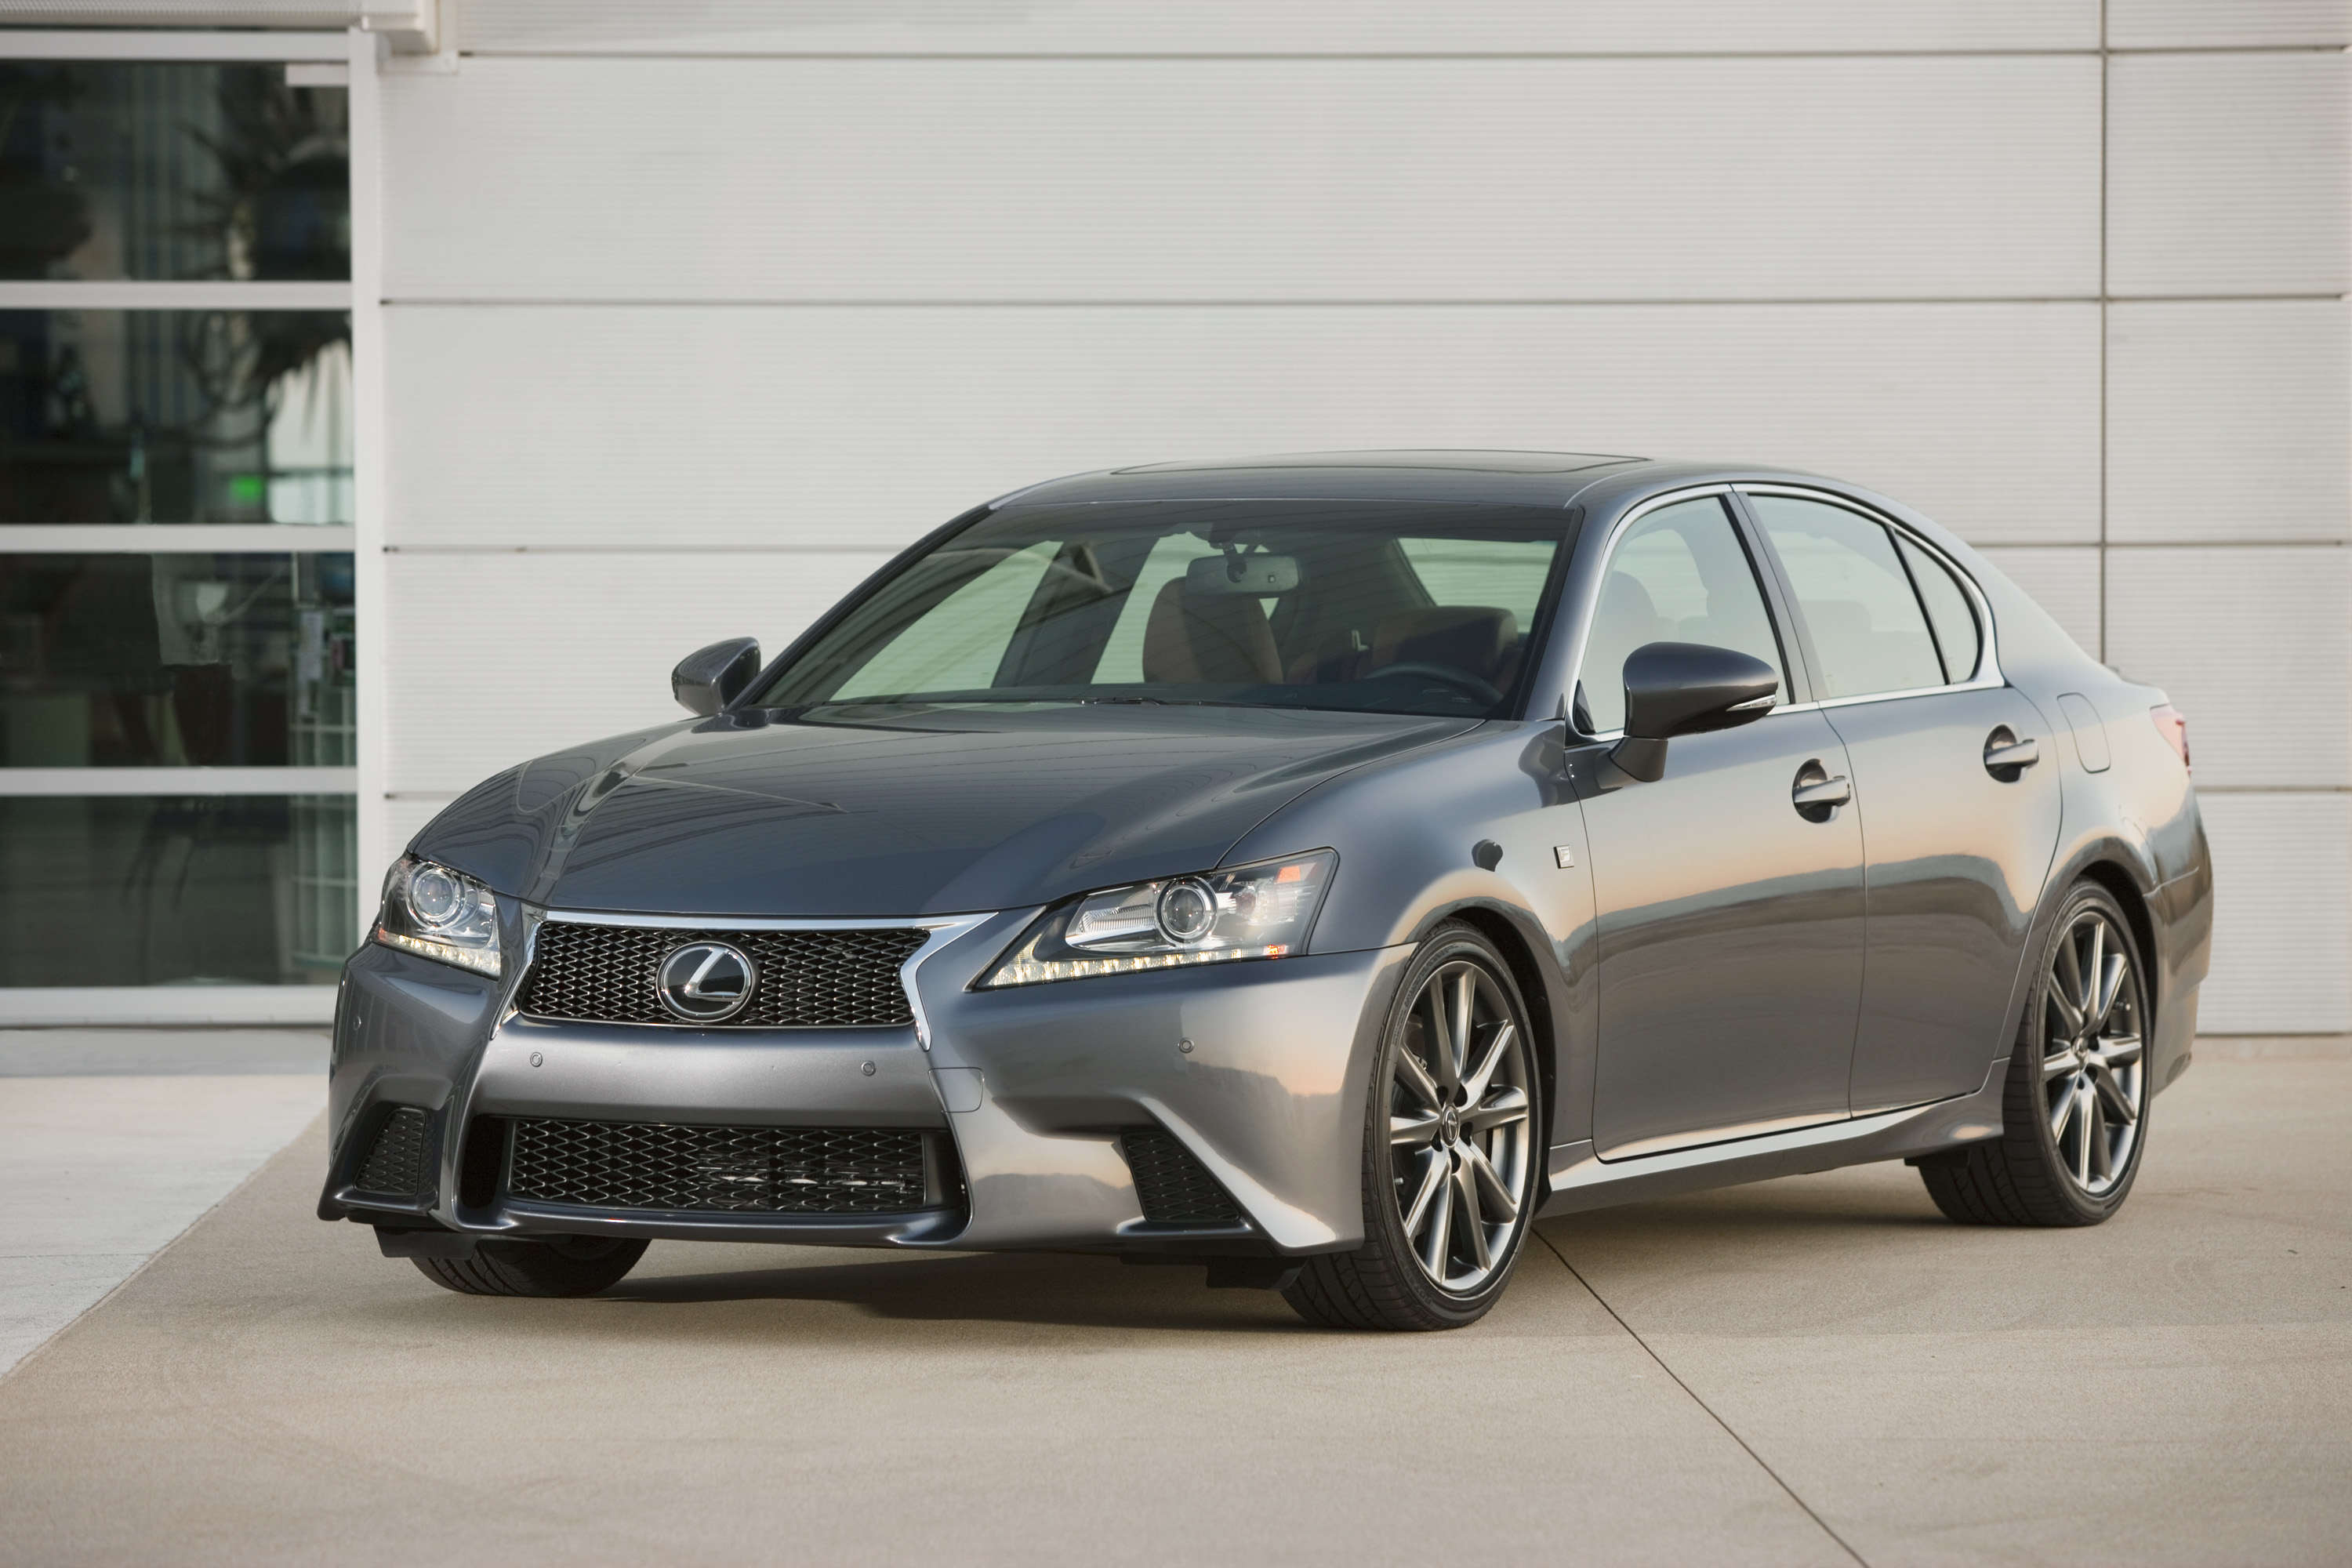 2013 Lexus Gs Named An Iihs Top Safety Pick